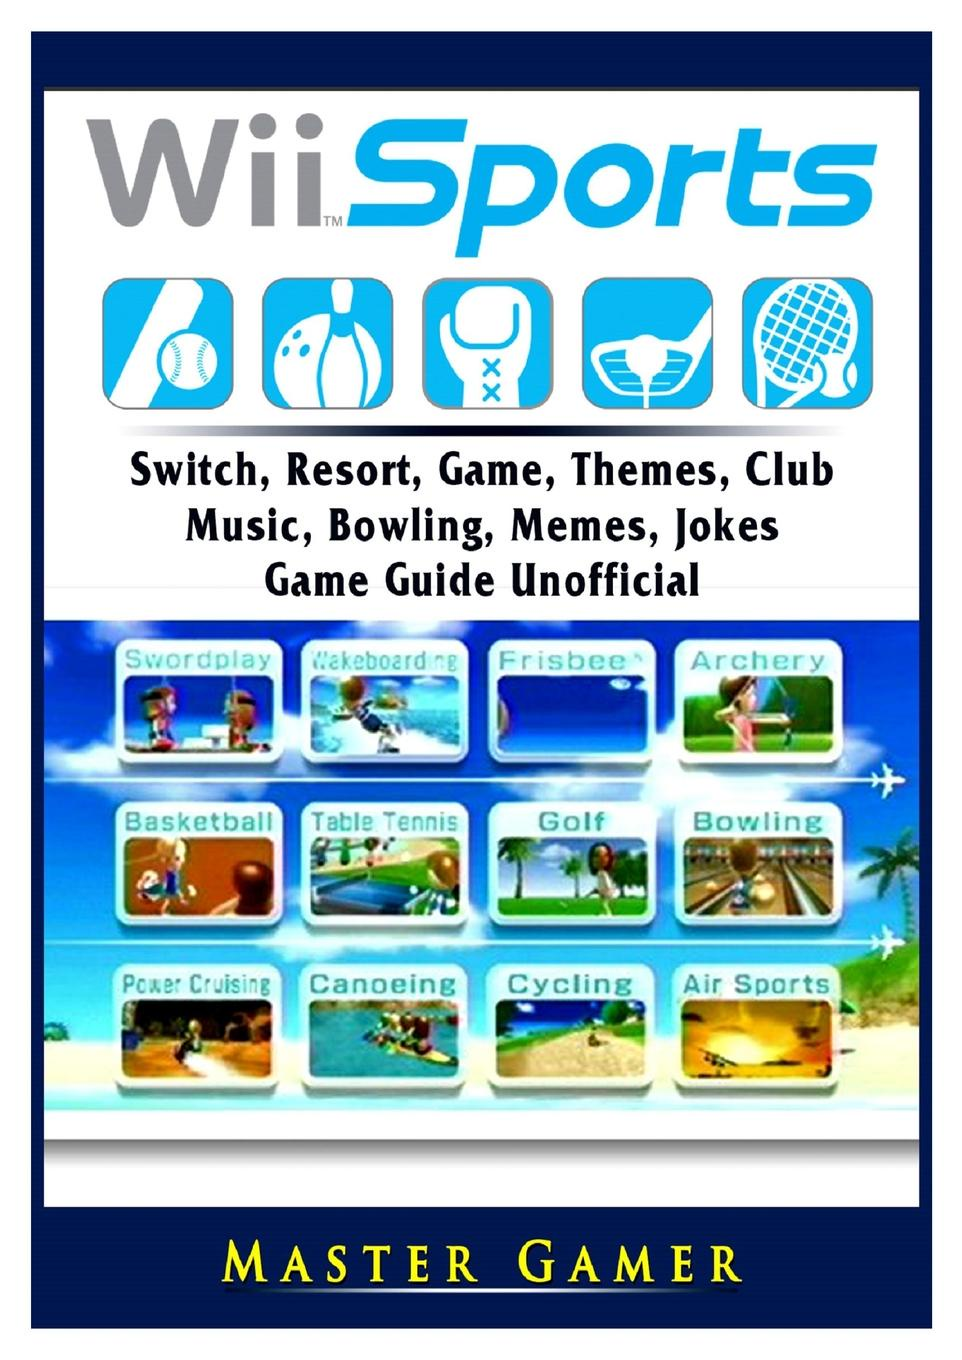 Master Gamer Wii Sports, Wii U, Switch, Resort, Game, Themes, Club, Music, Bowling, Memes, Jokes, Game Guide Unofficial